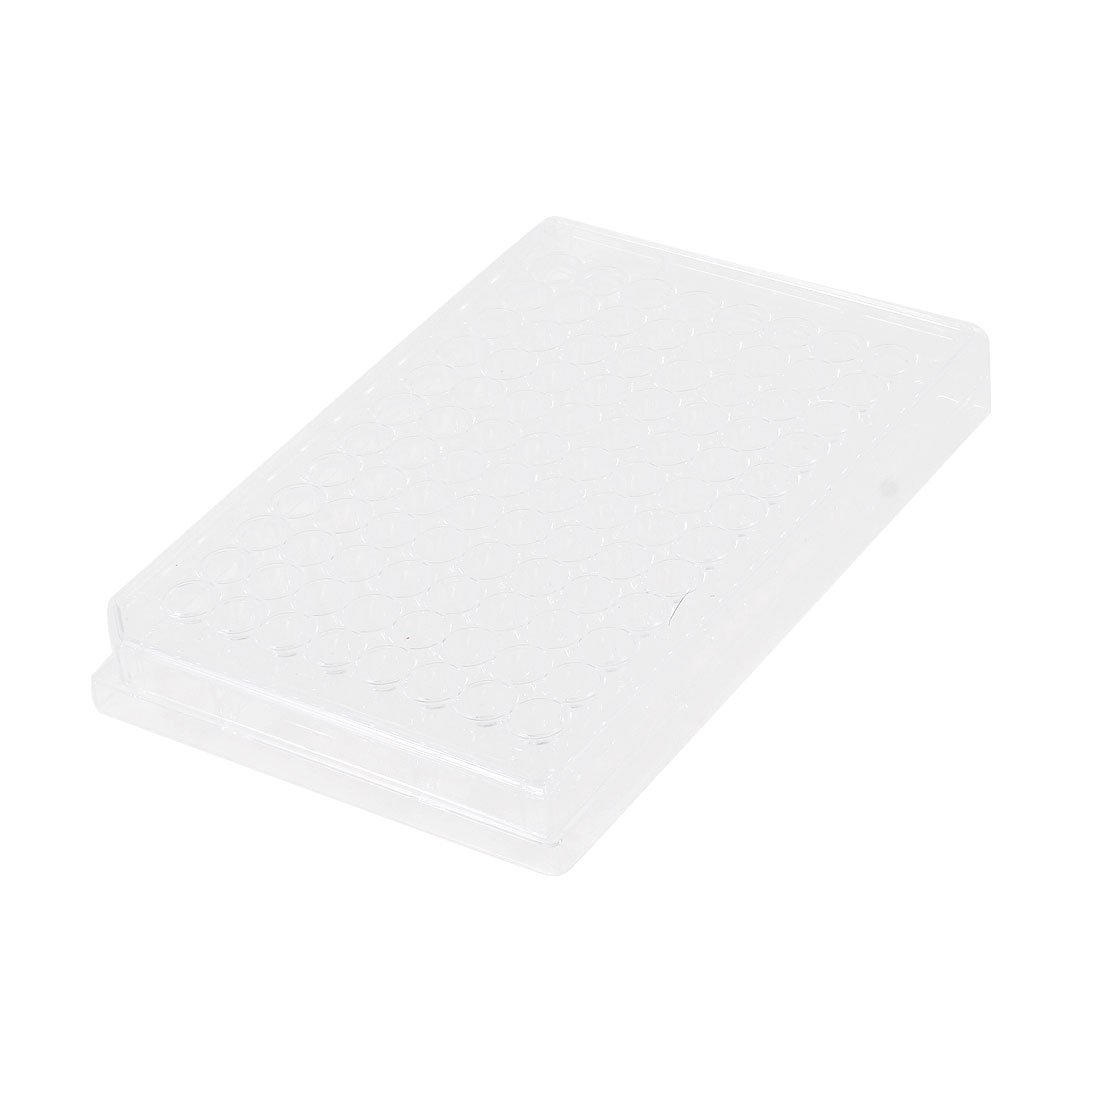 Clear Plastic Rectangle Shape 96 Compartment Cell Culture Plate